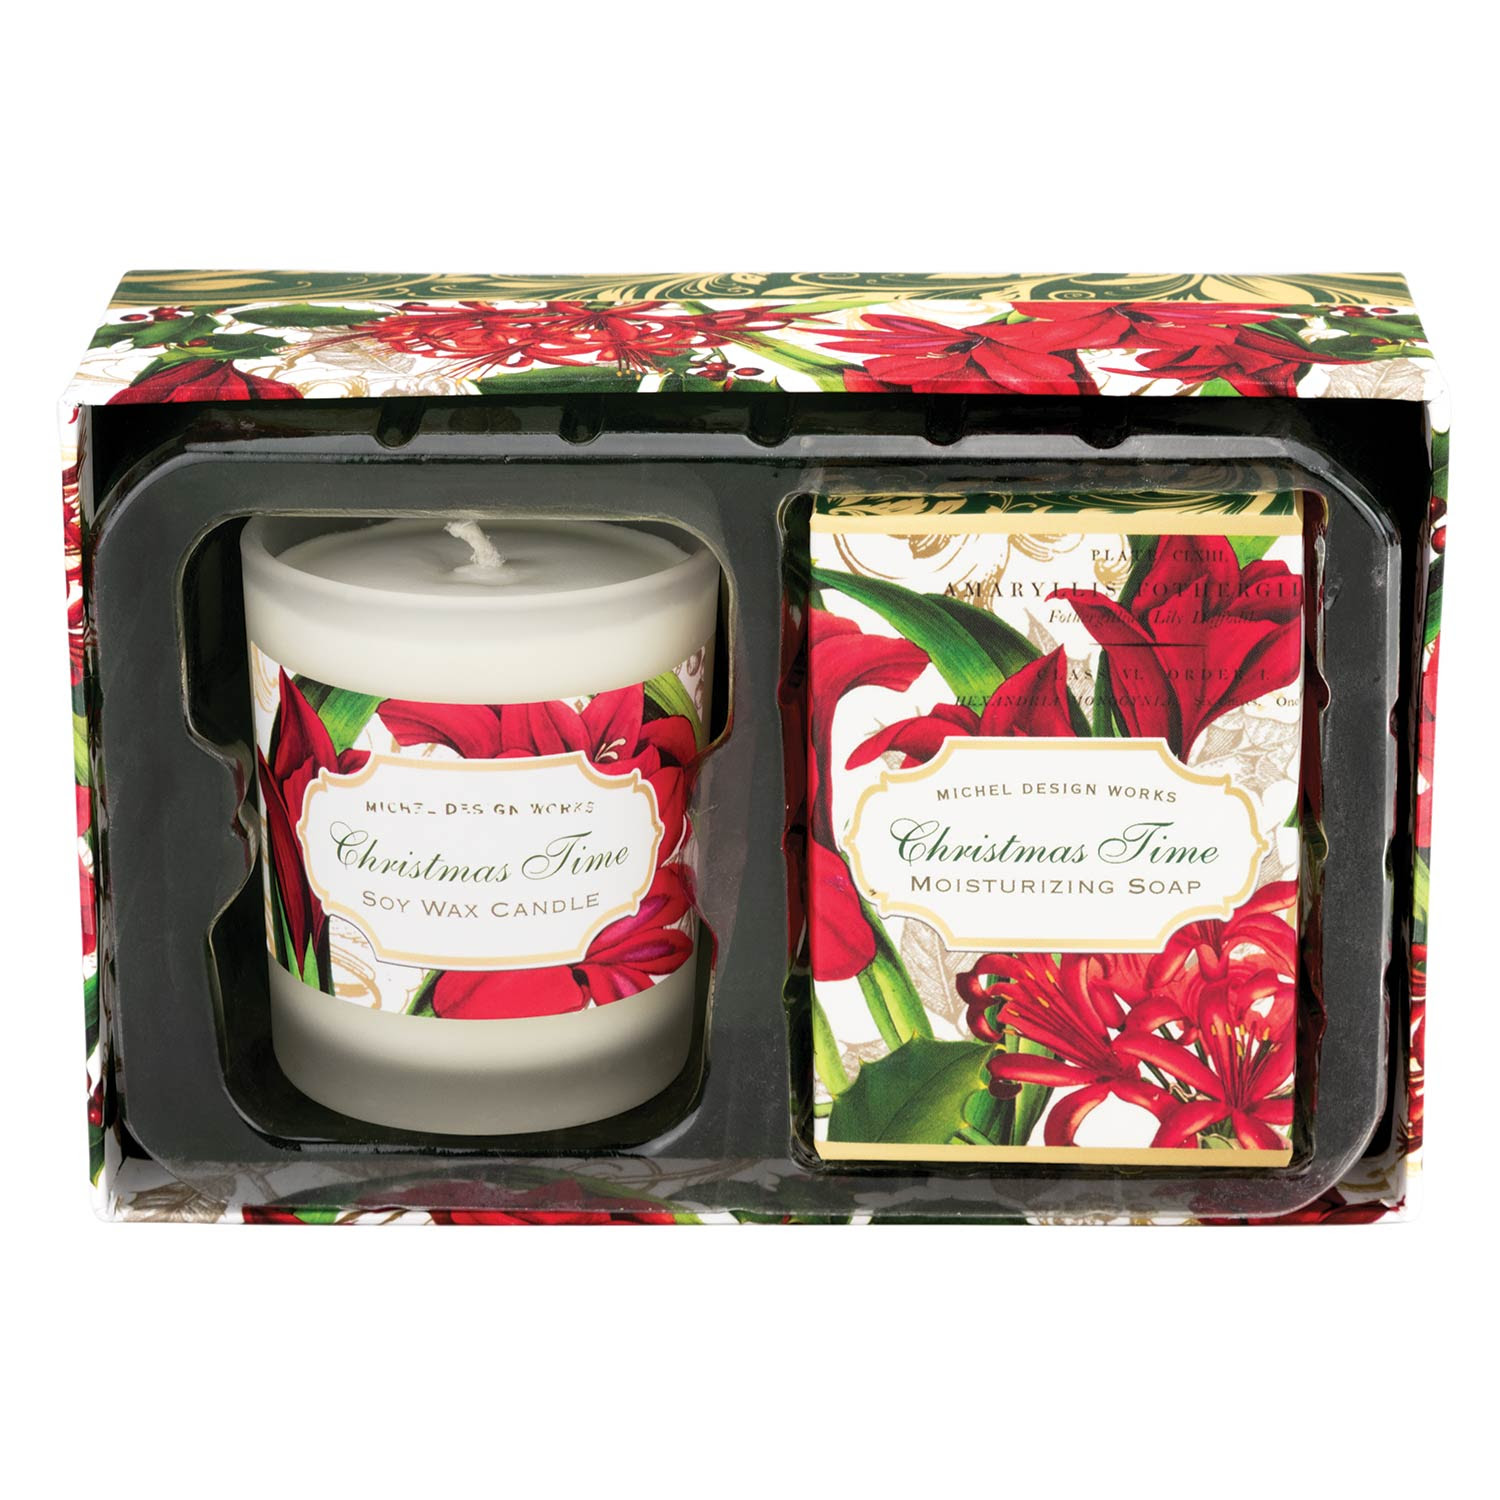 Michel Design Works Candle Soap Gift Sets Christmas Time